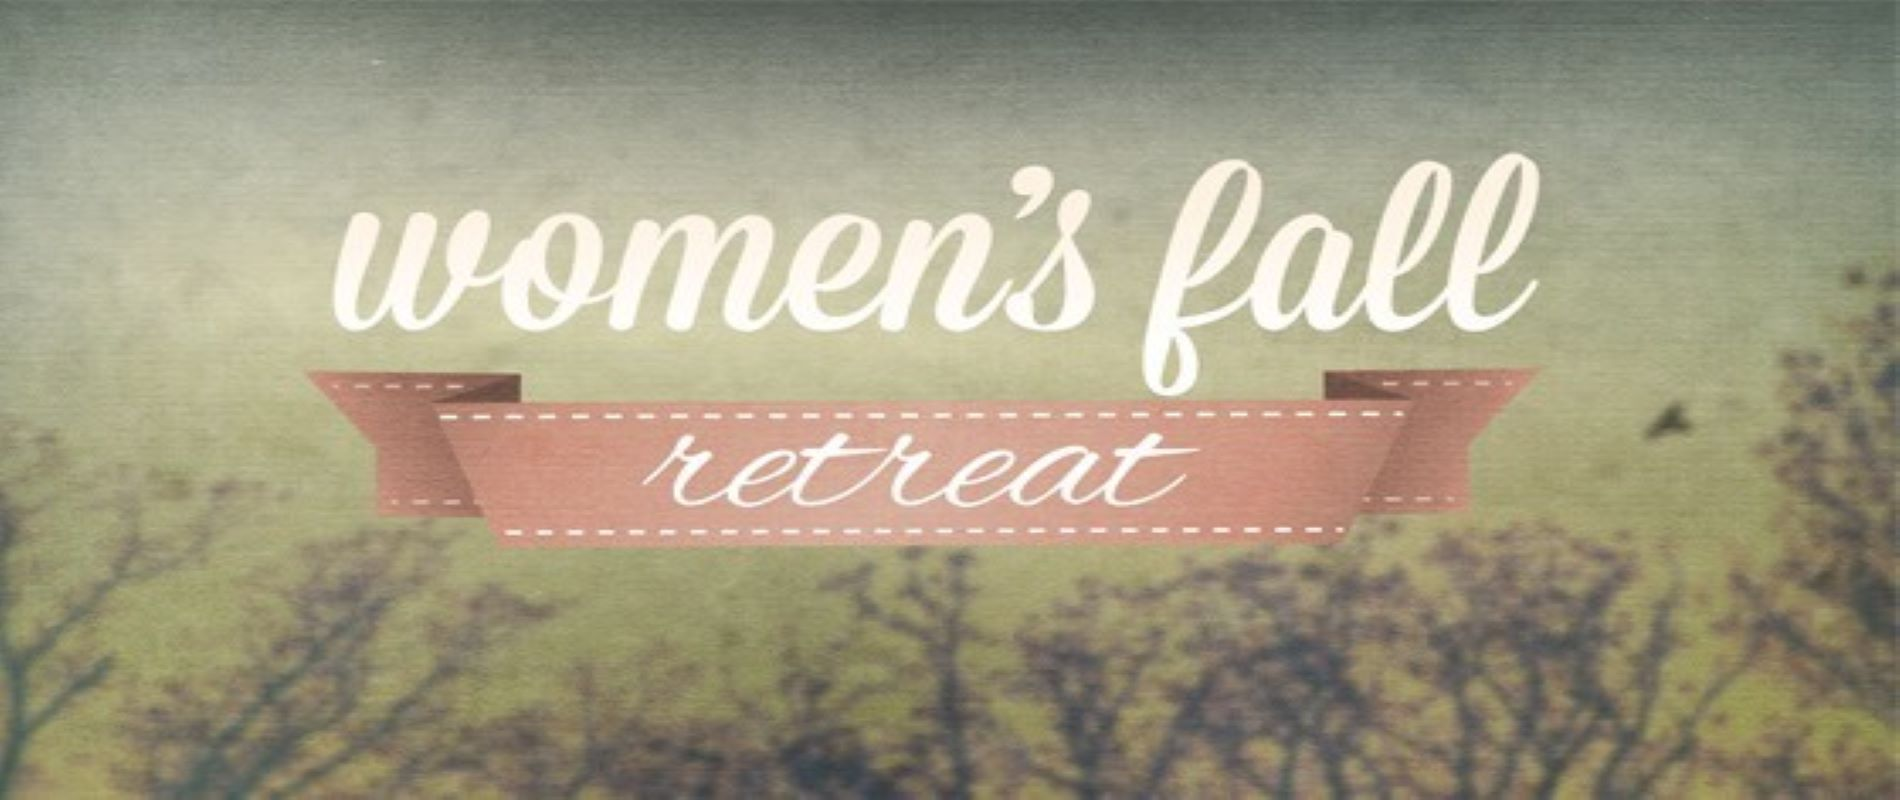 2nd Annual Women's Fall Retreat